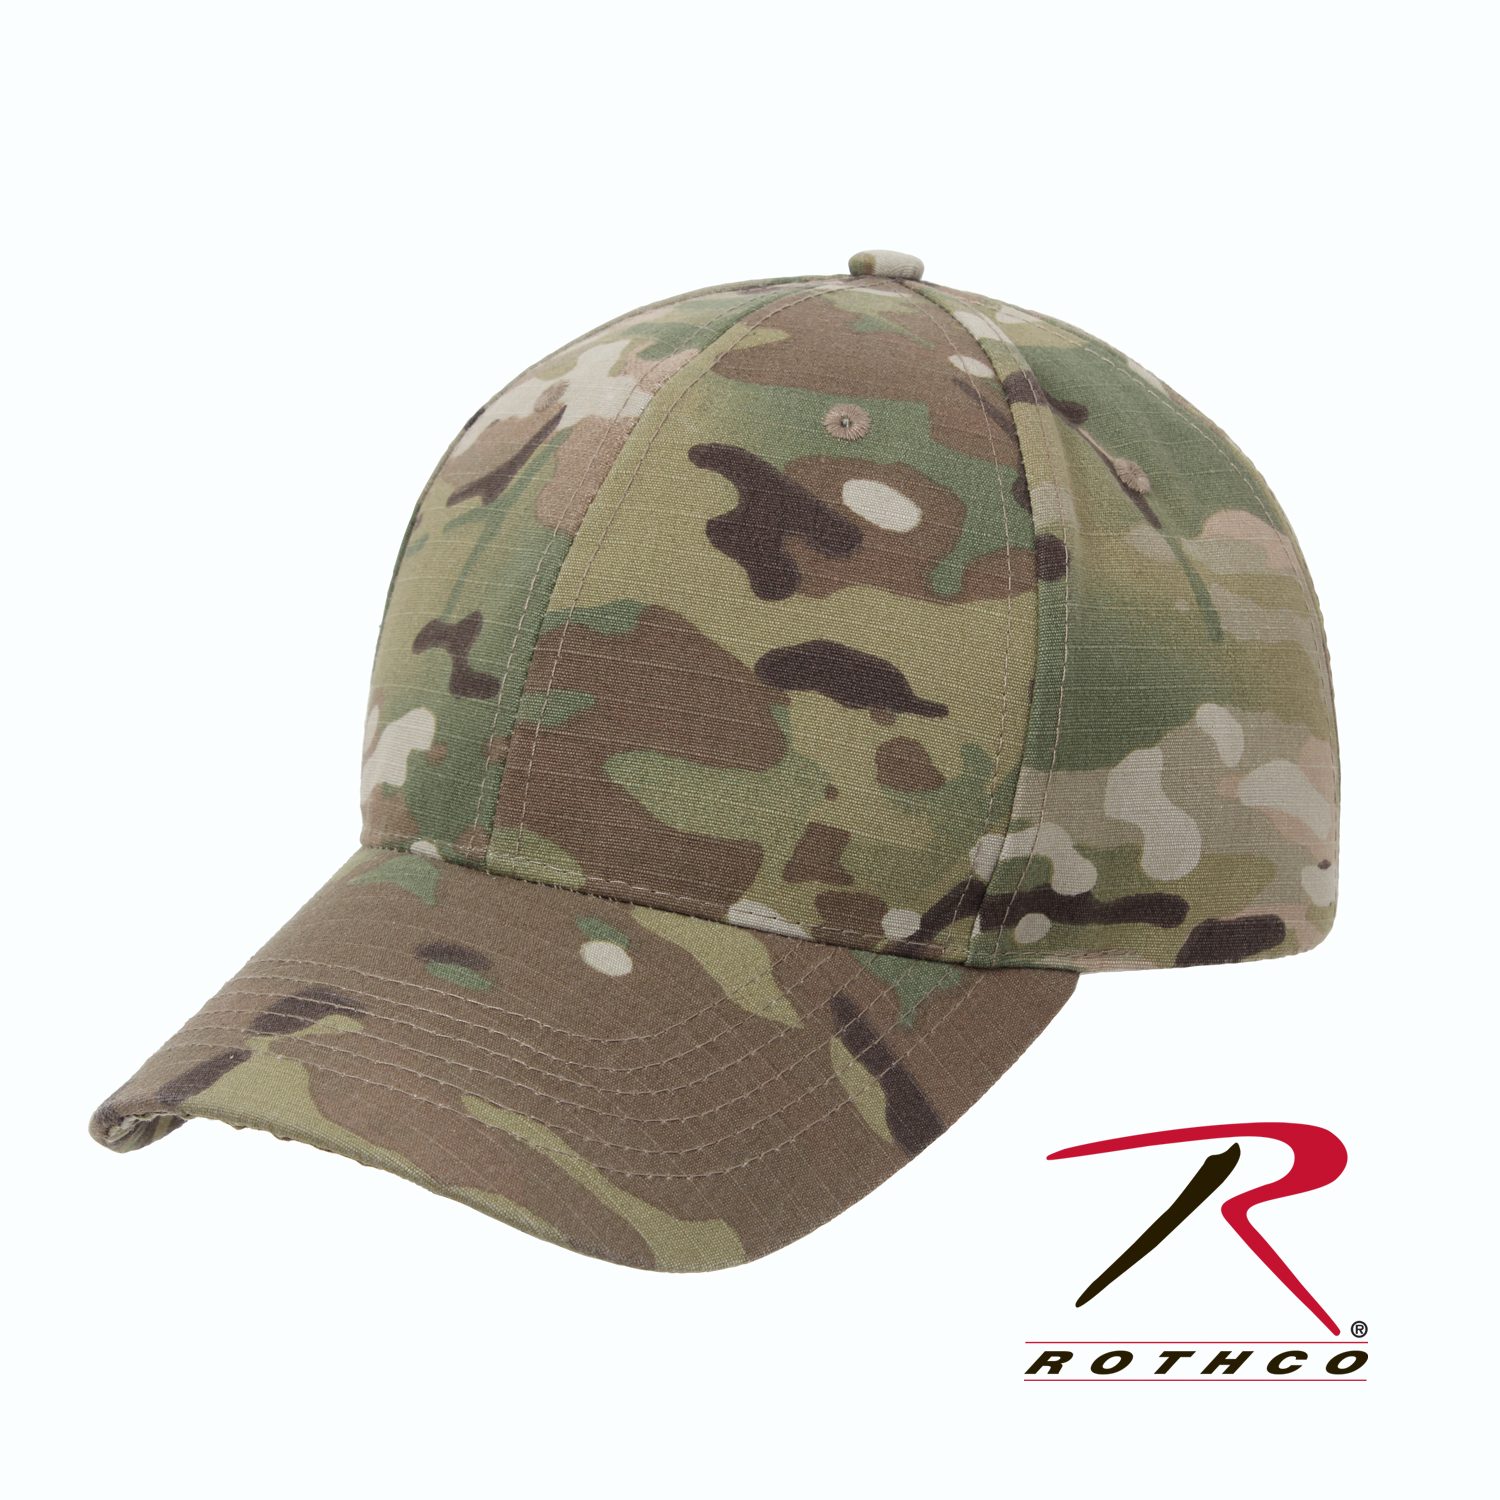 Rothco Multicam Low Profile Cap a30944c7193